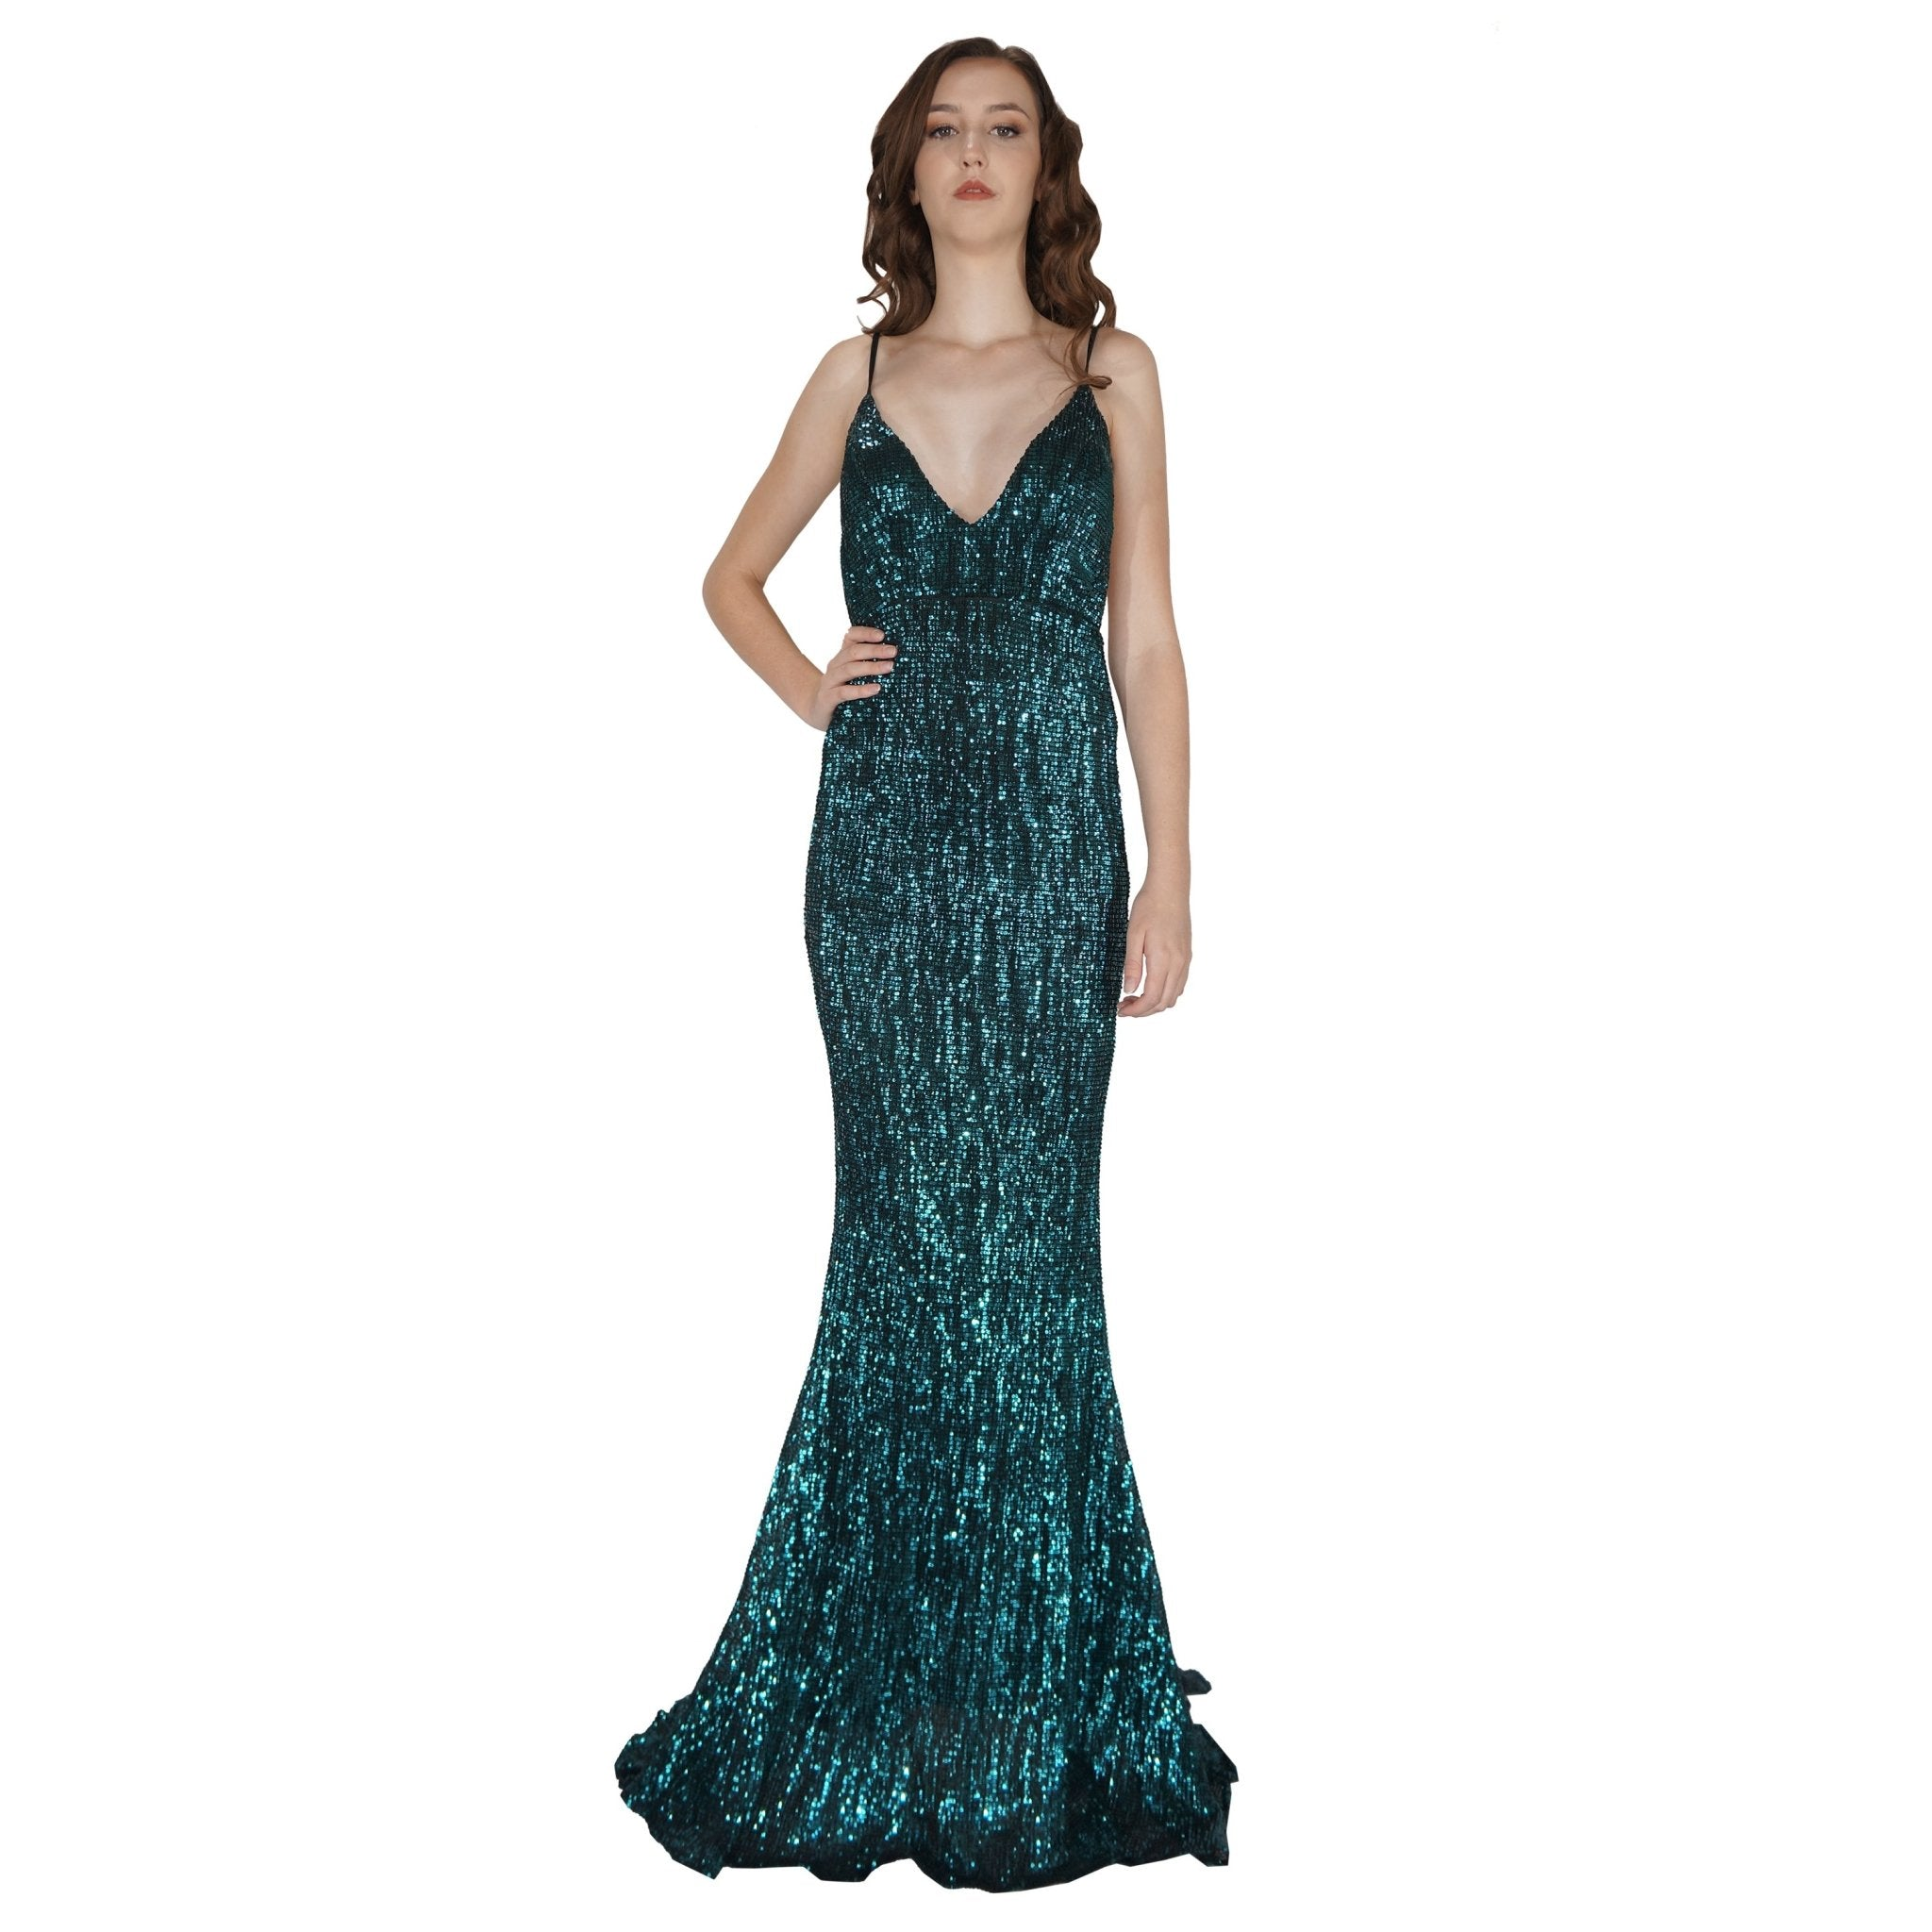 Long Backless Emerald Sequin Evening Dress Envious Bridal & Formal